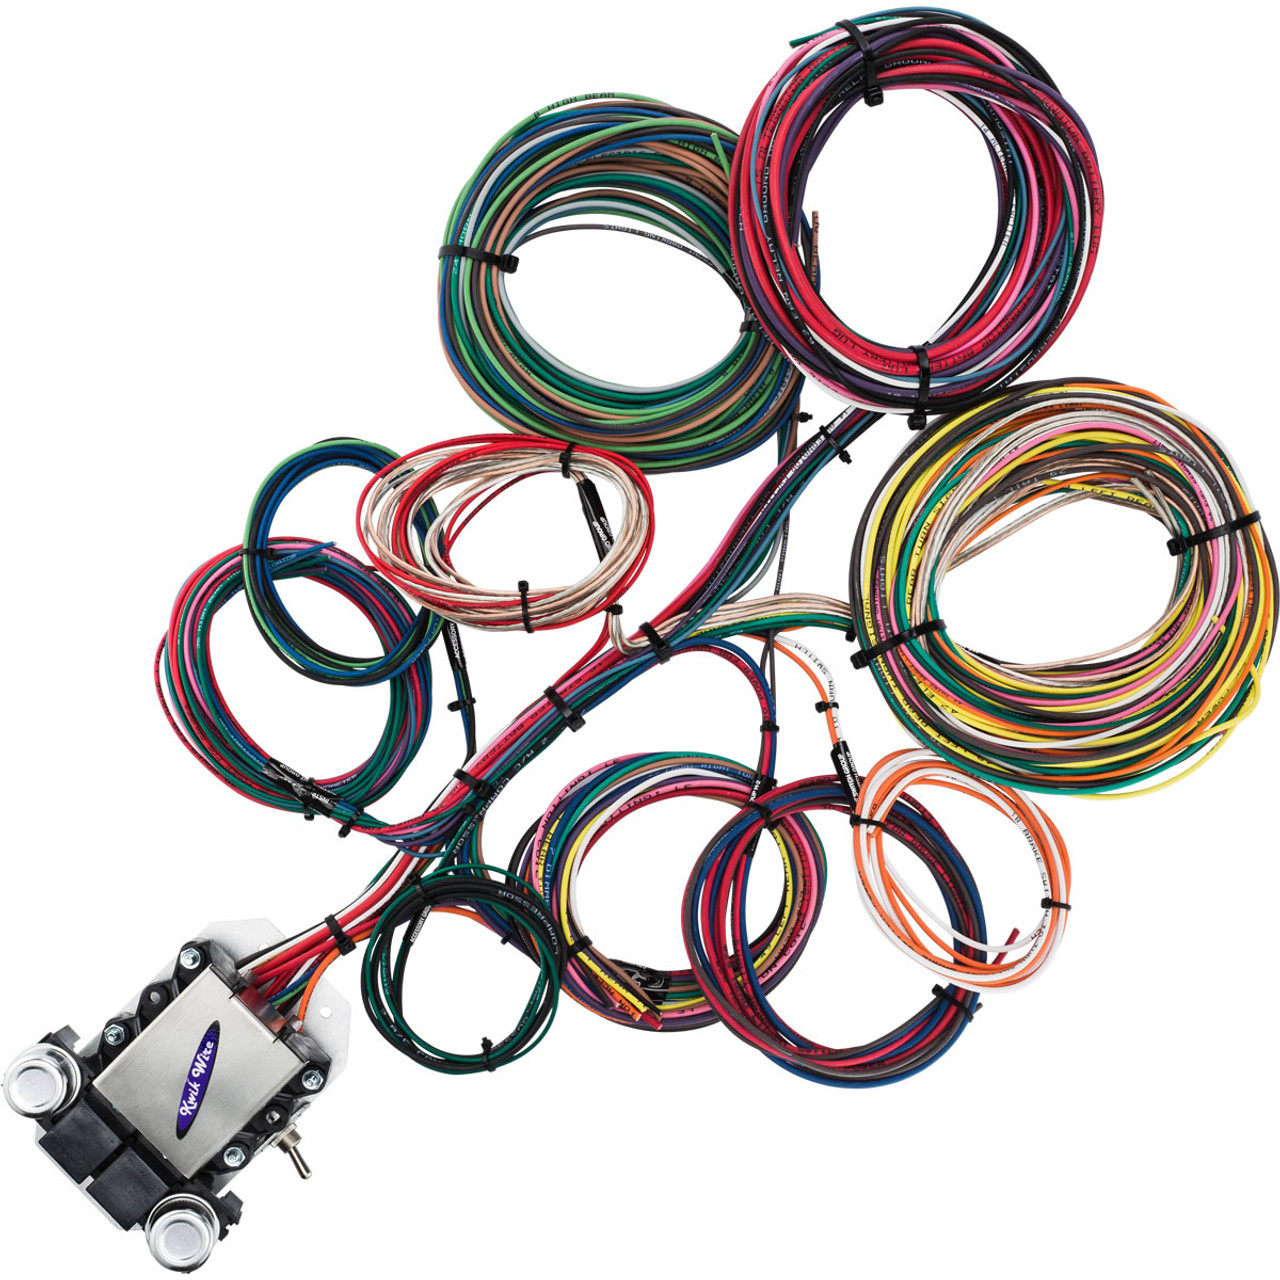 14 Circuit Wire Harness Electrify Your Ride Gm 6 Way Wiring Diagram